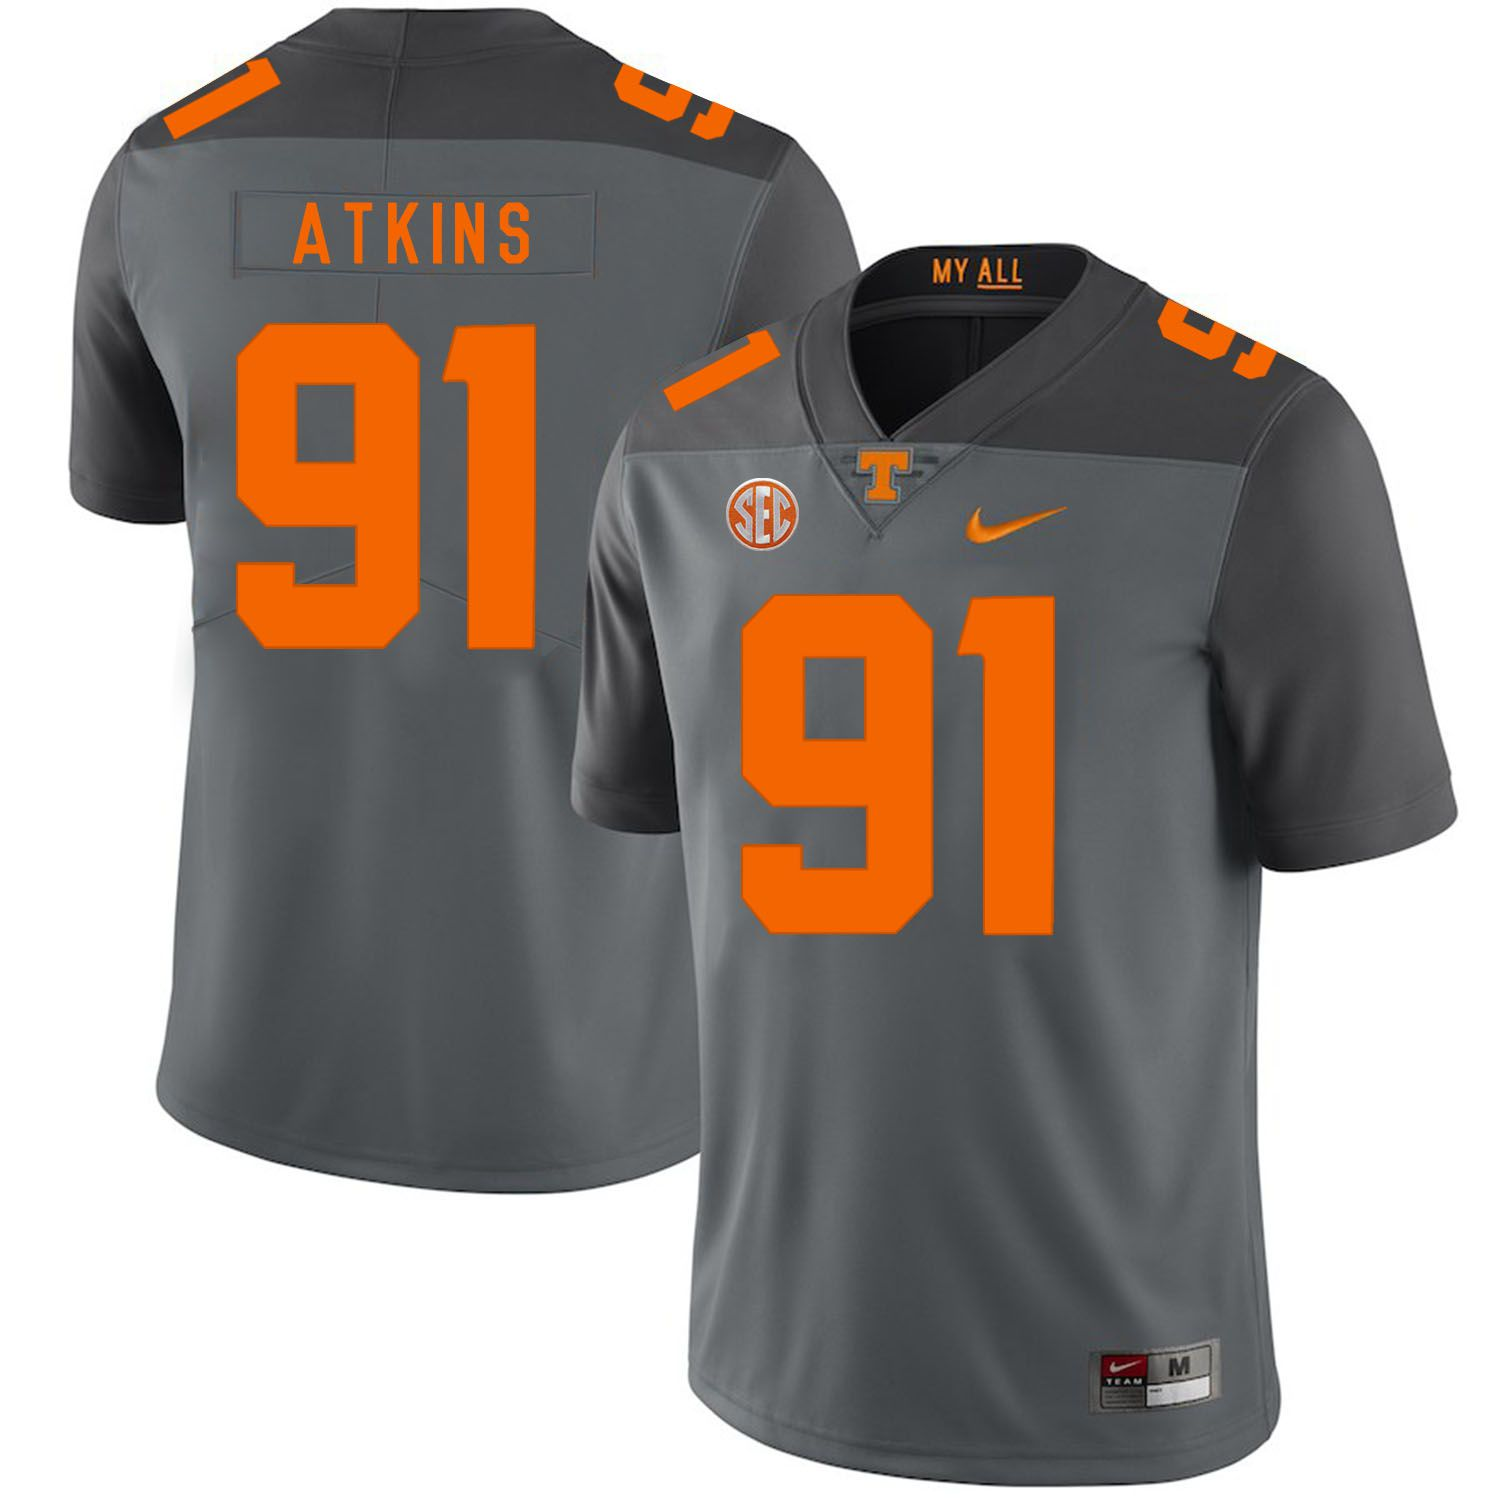 Men Tennessee Volunteers 91 Atkins Grey Customized NCAA Jerseys